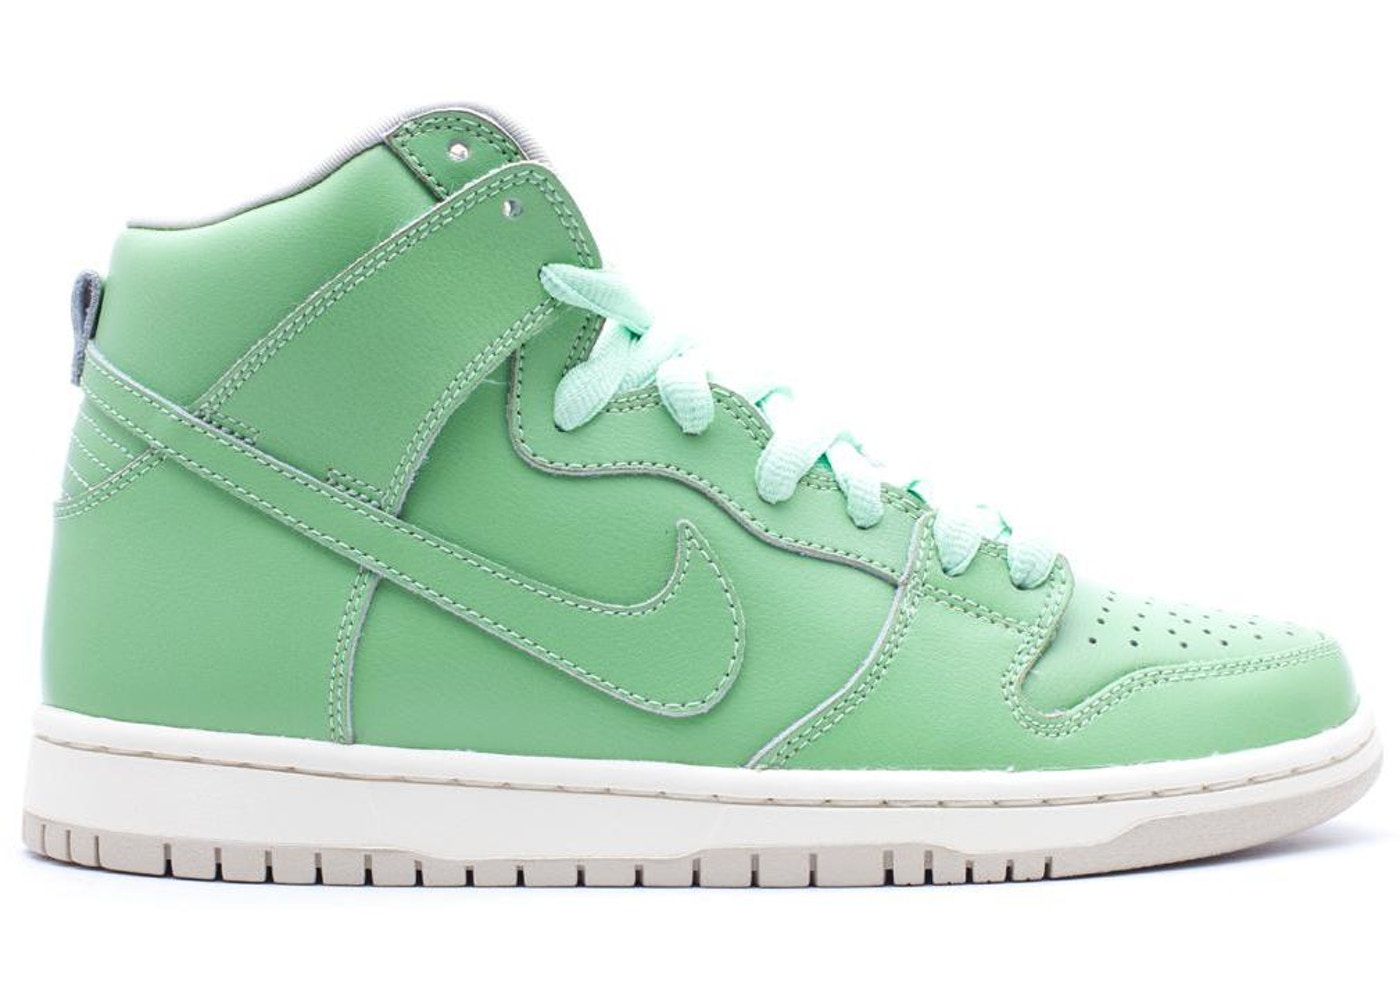 best website 766f9 1abcd ... Nike Dunk SB High Statue of Liberty - 313171-302 ...